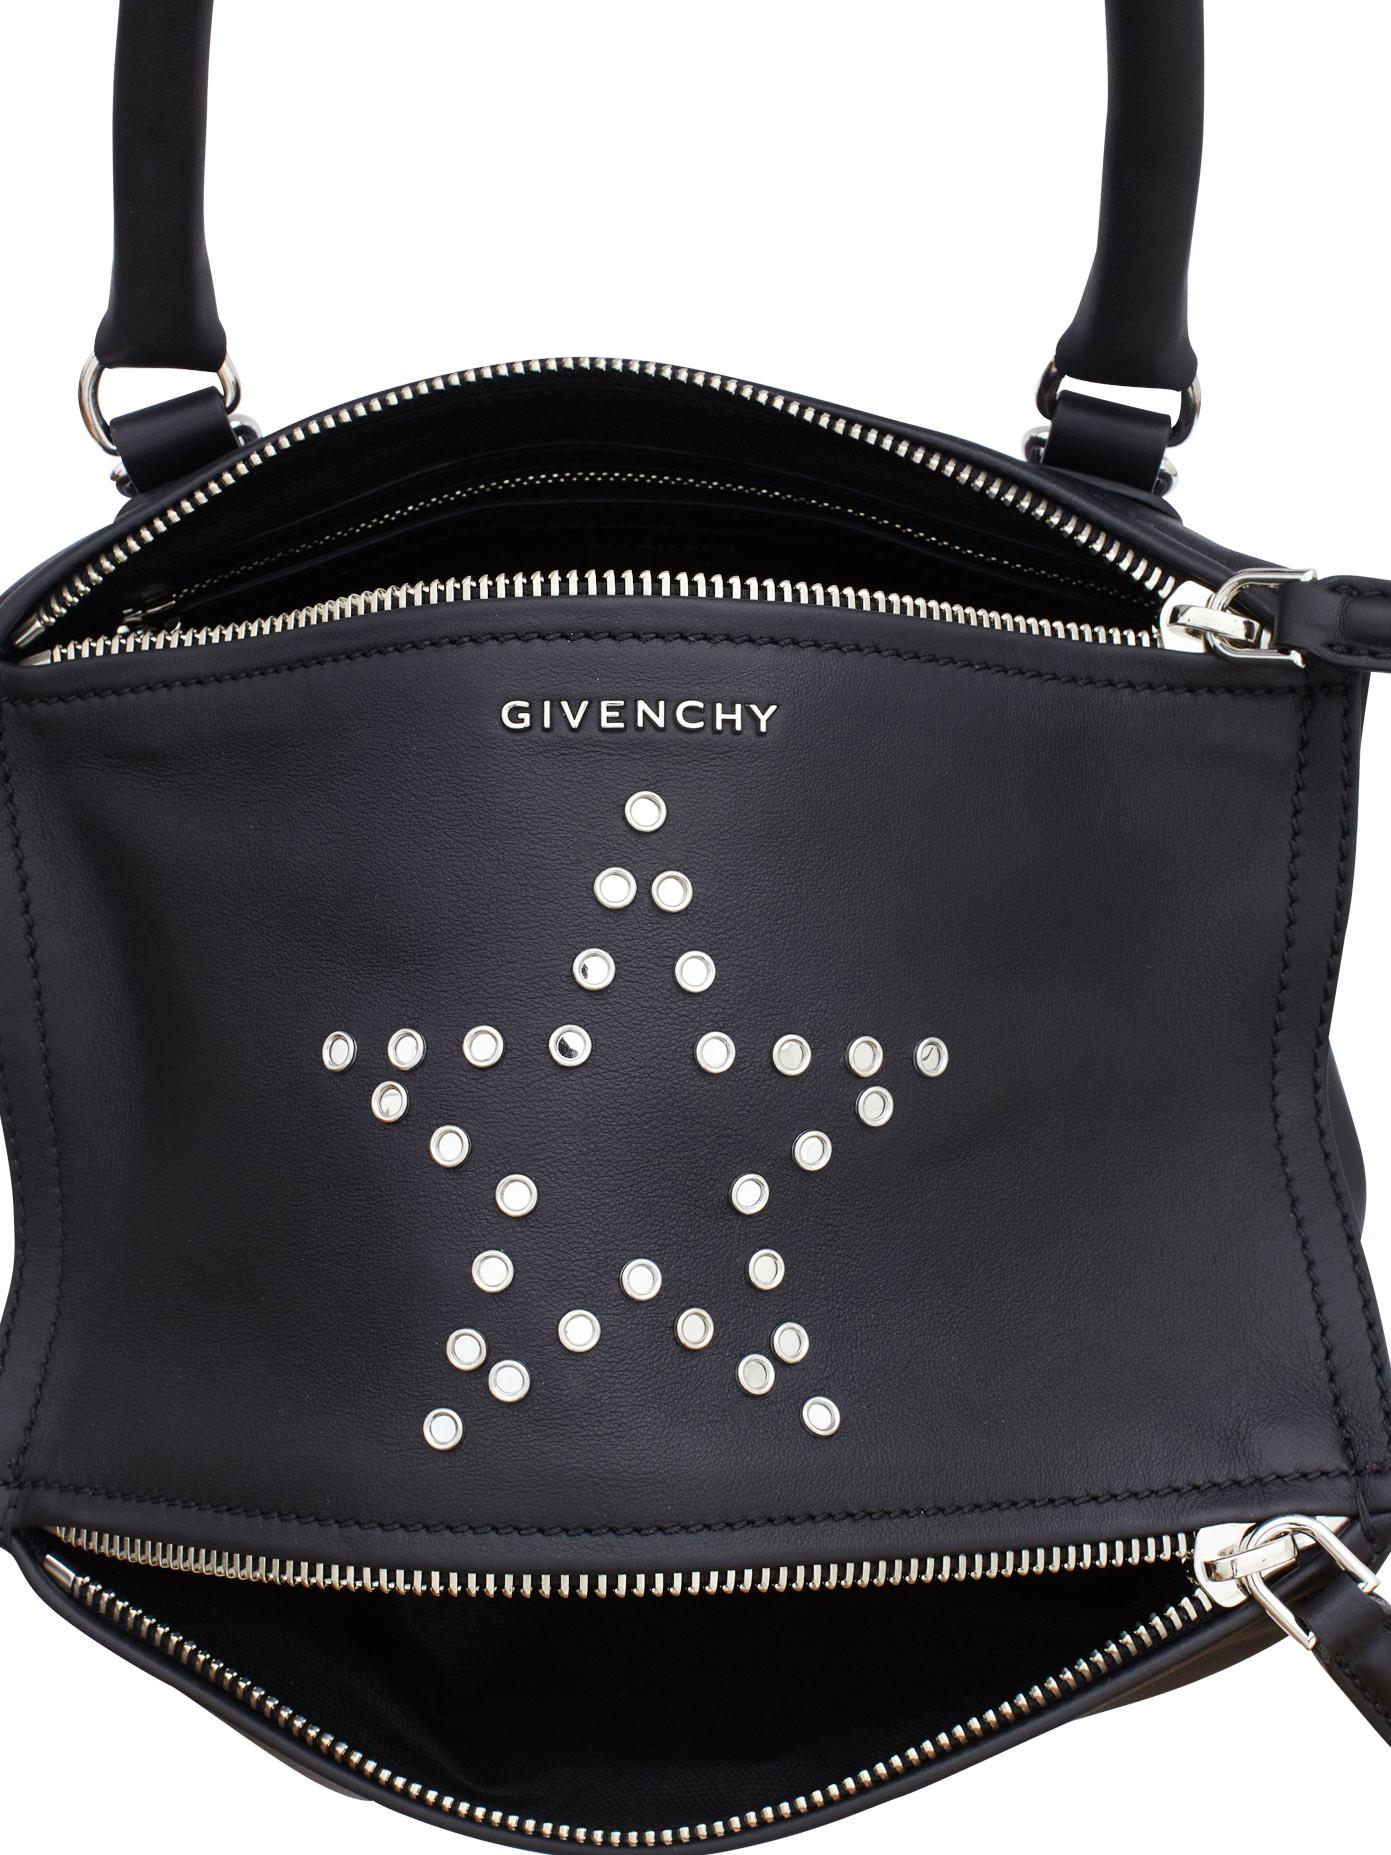 5b1c5d3187a0 Lyst - Givenchy Pandora Small Star Studded Leather Bag in Black